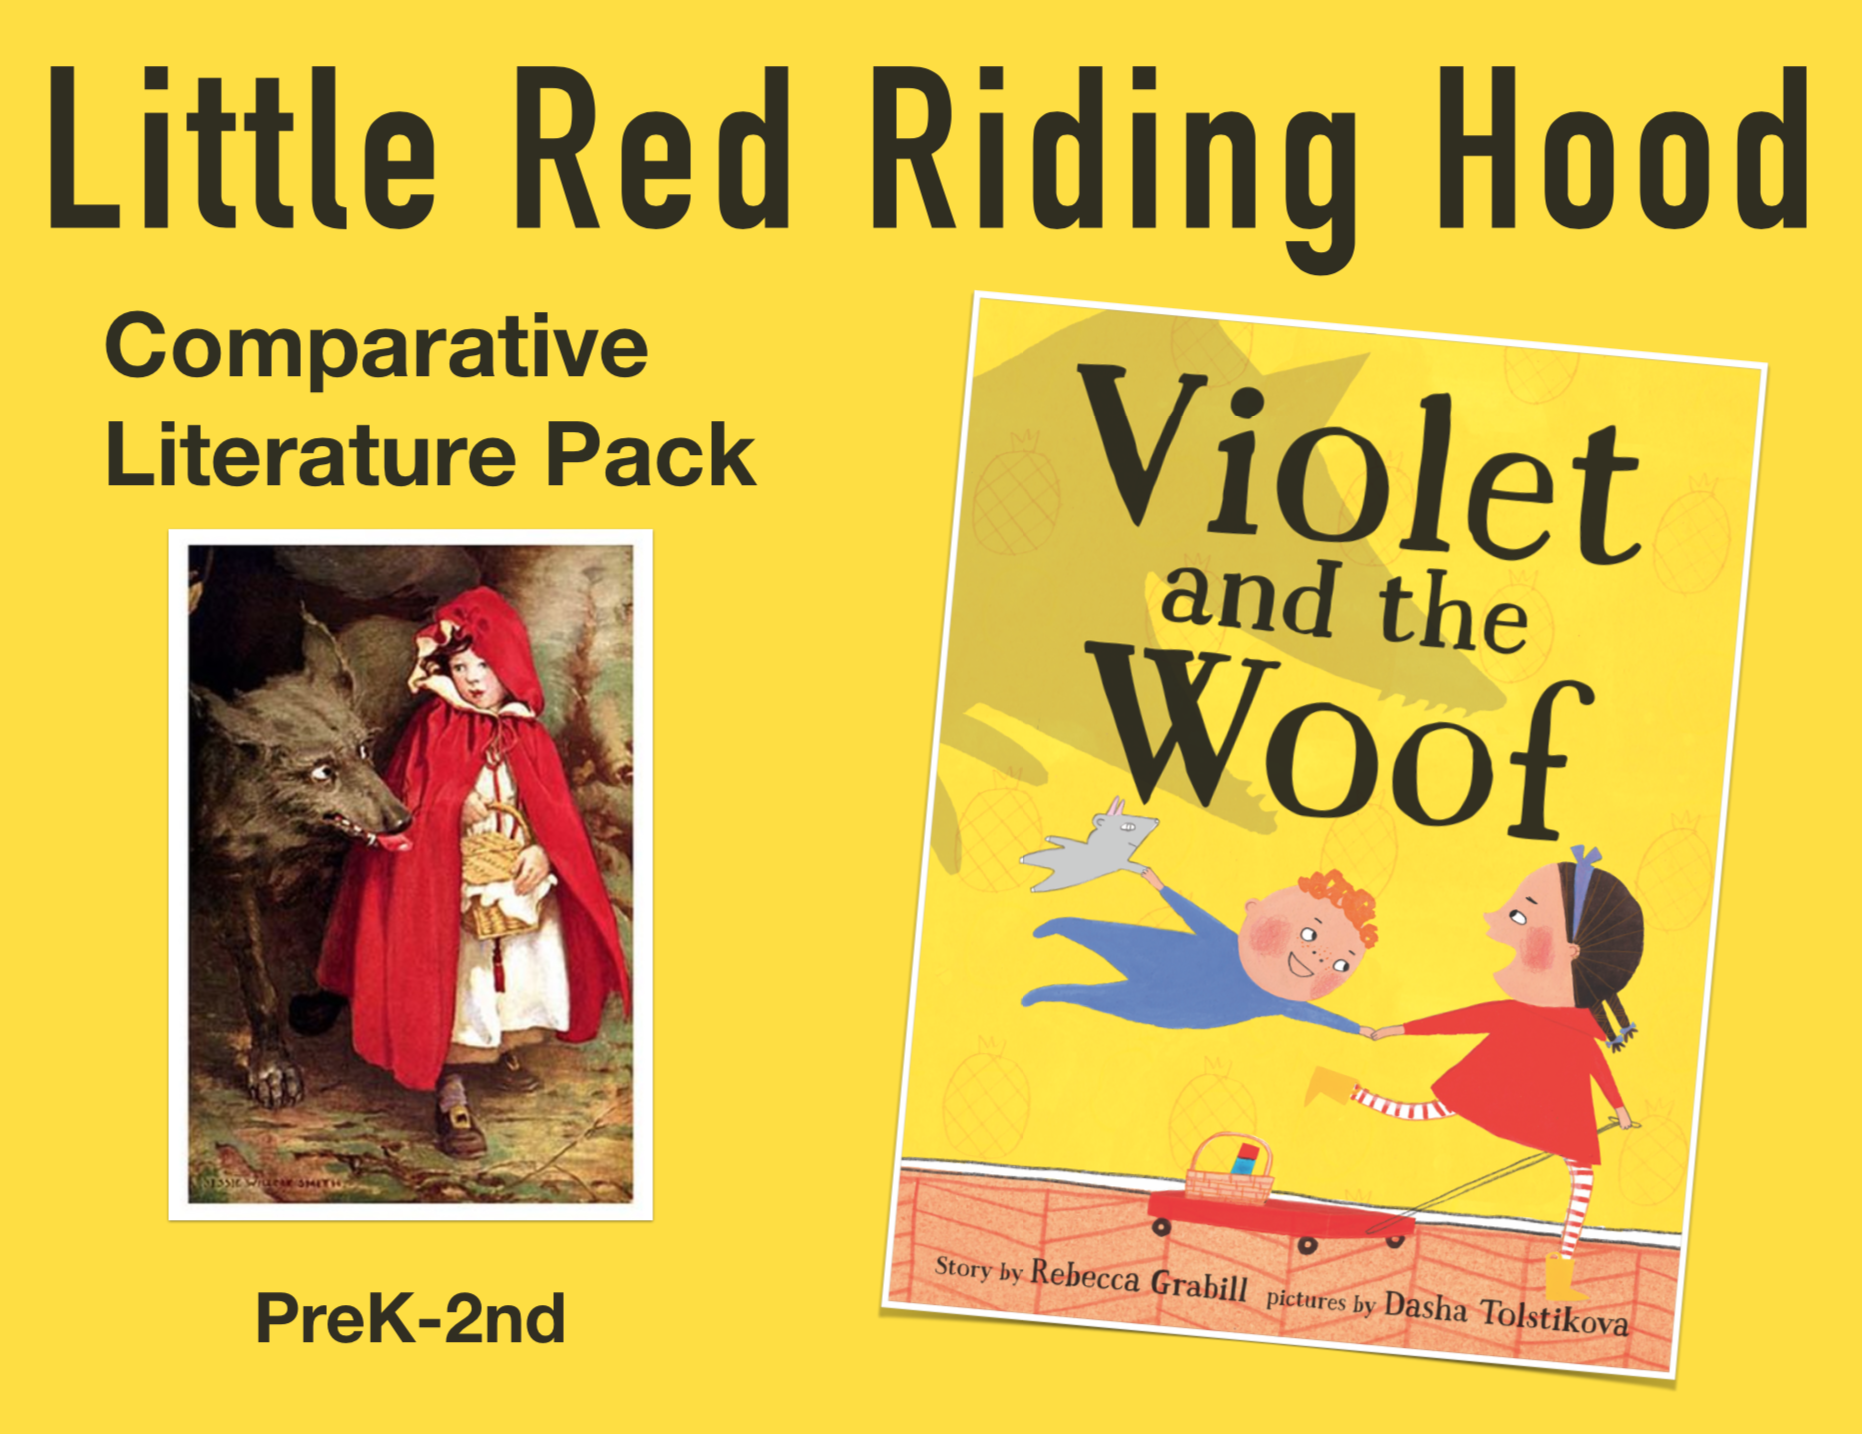 Find a FREE comparative literature printable unit study based on  Violet and the Woof  and  Little Red Riding Hood .